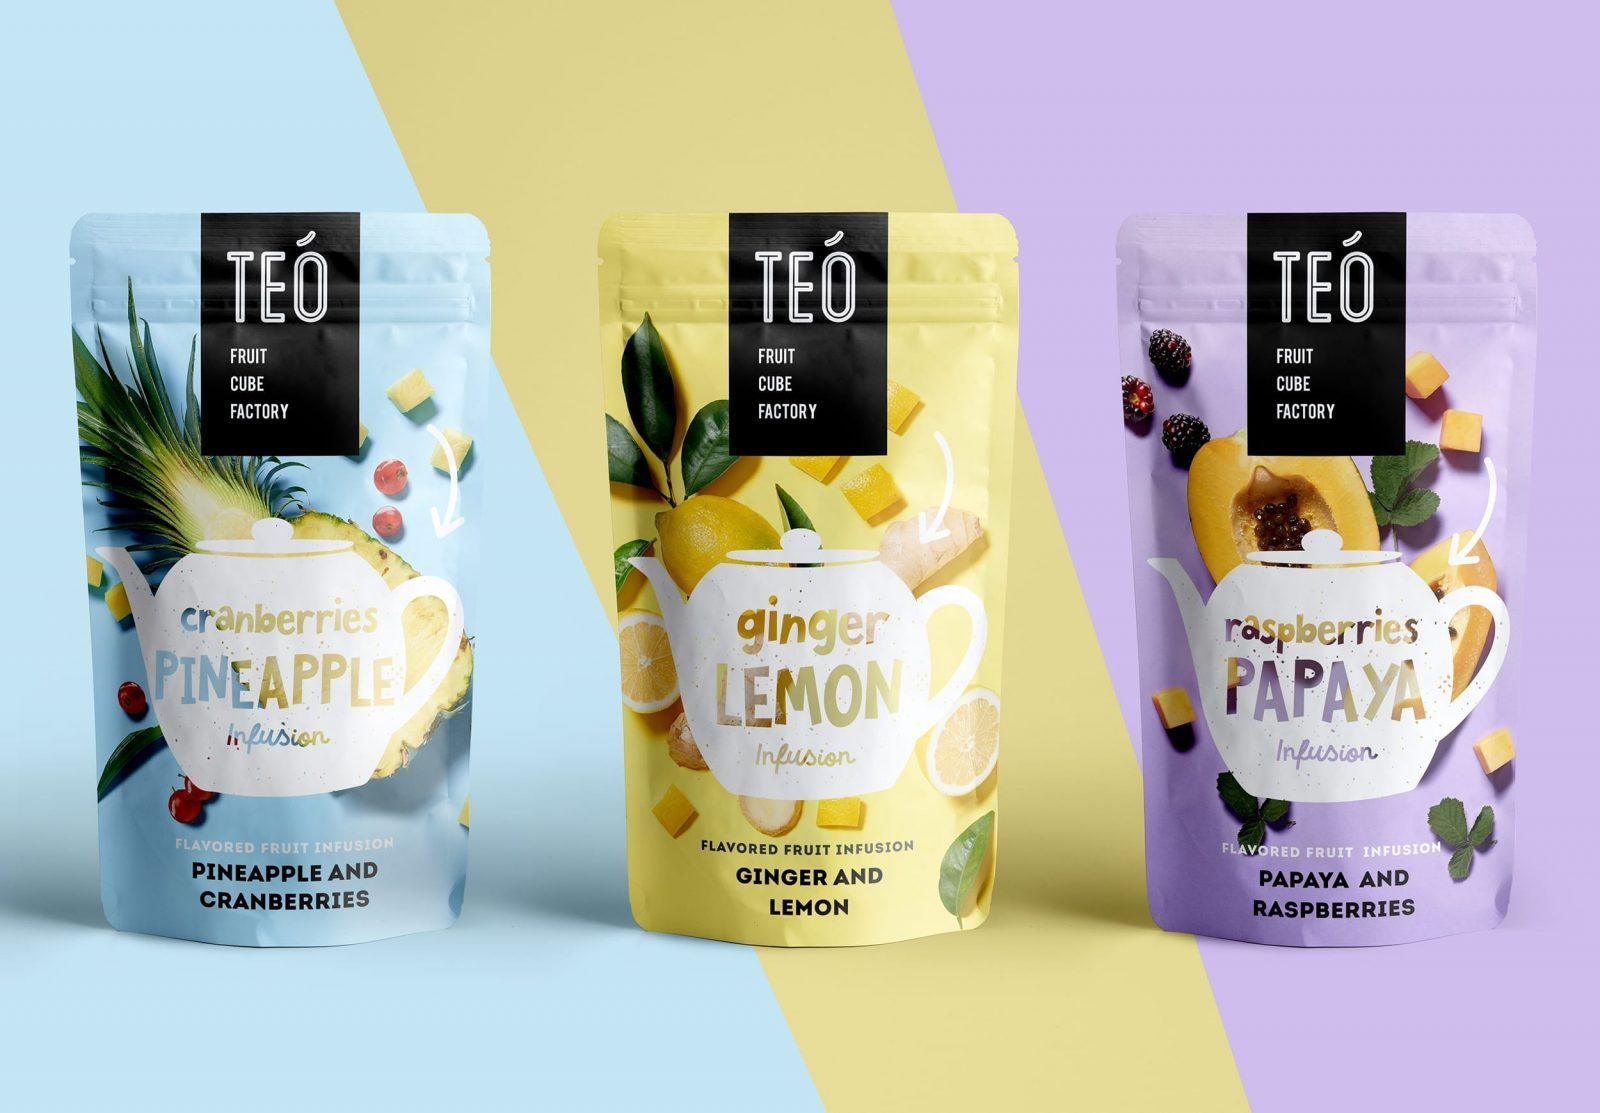 Teo – Fruit Cube Factory